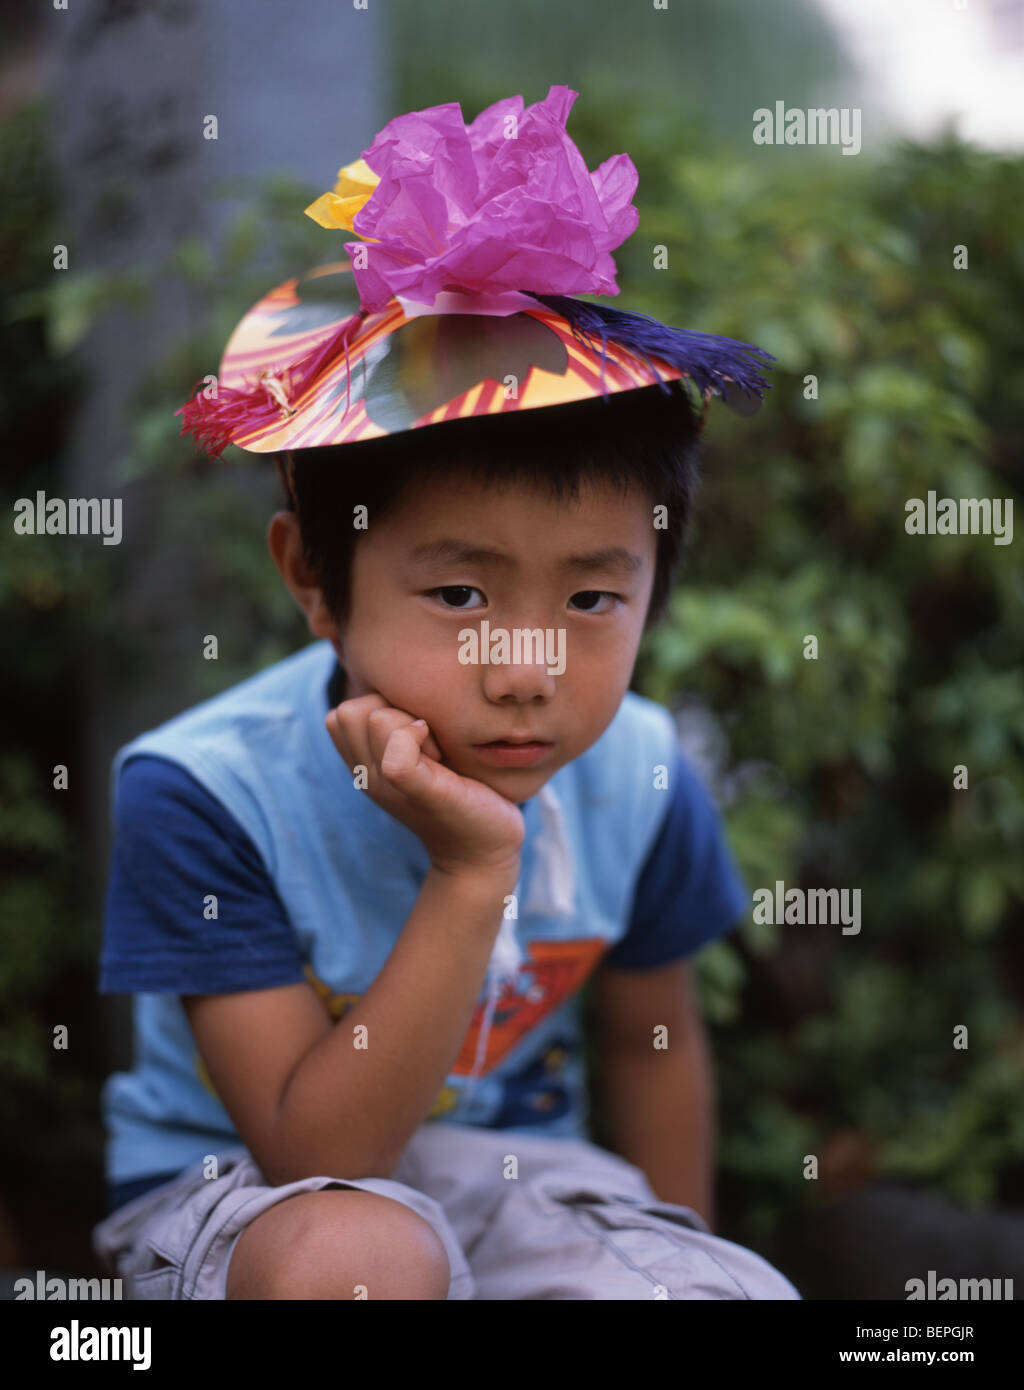 Japan Child Kid Male Children Young Japanese High Resolution Stock Photography And Images Alamy